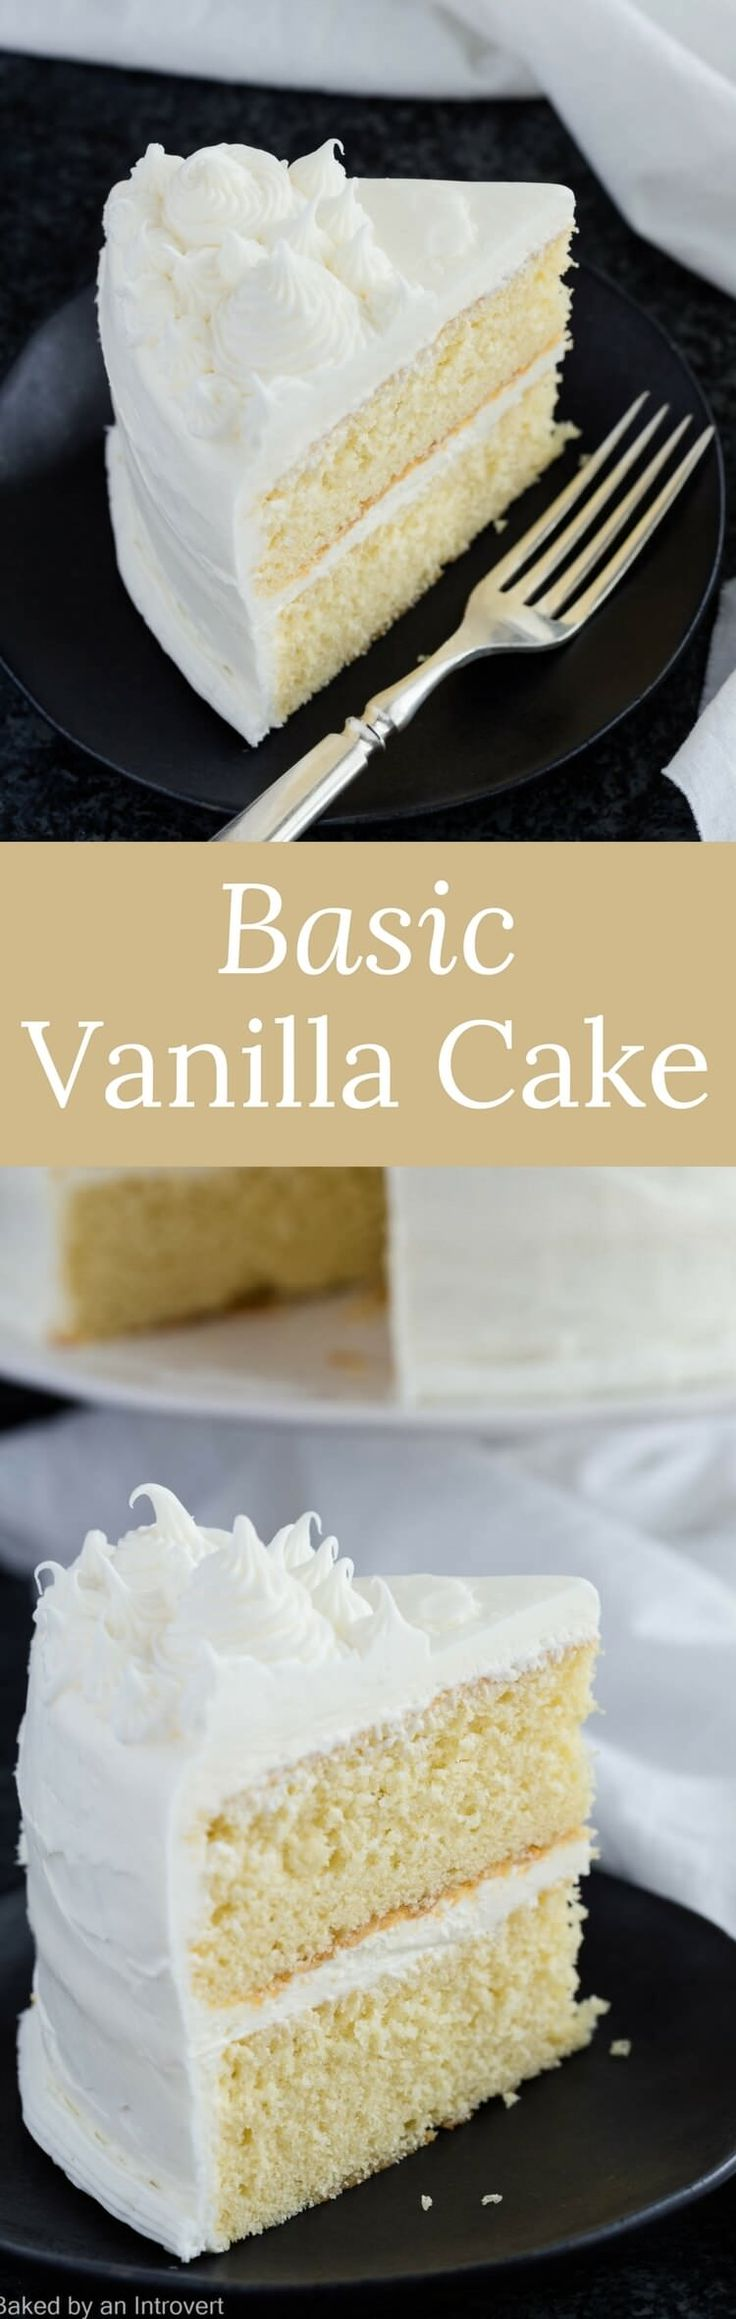 How to make a yummy cake from scratch